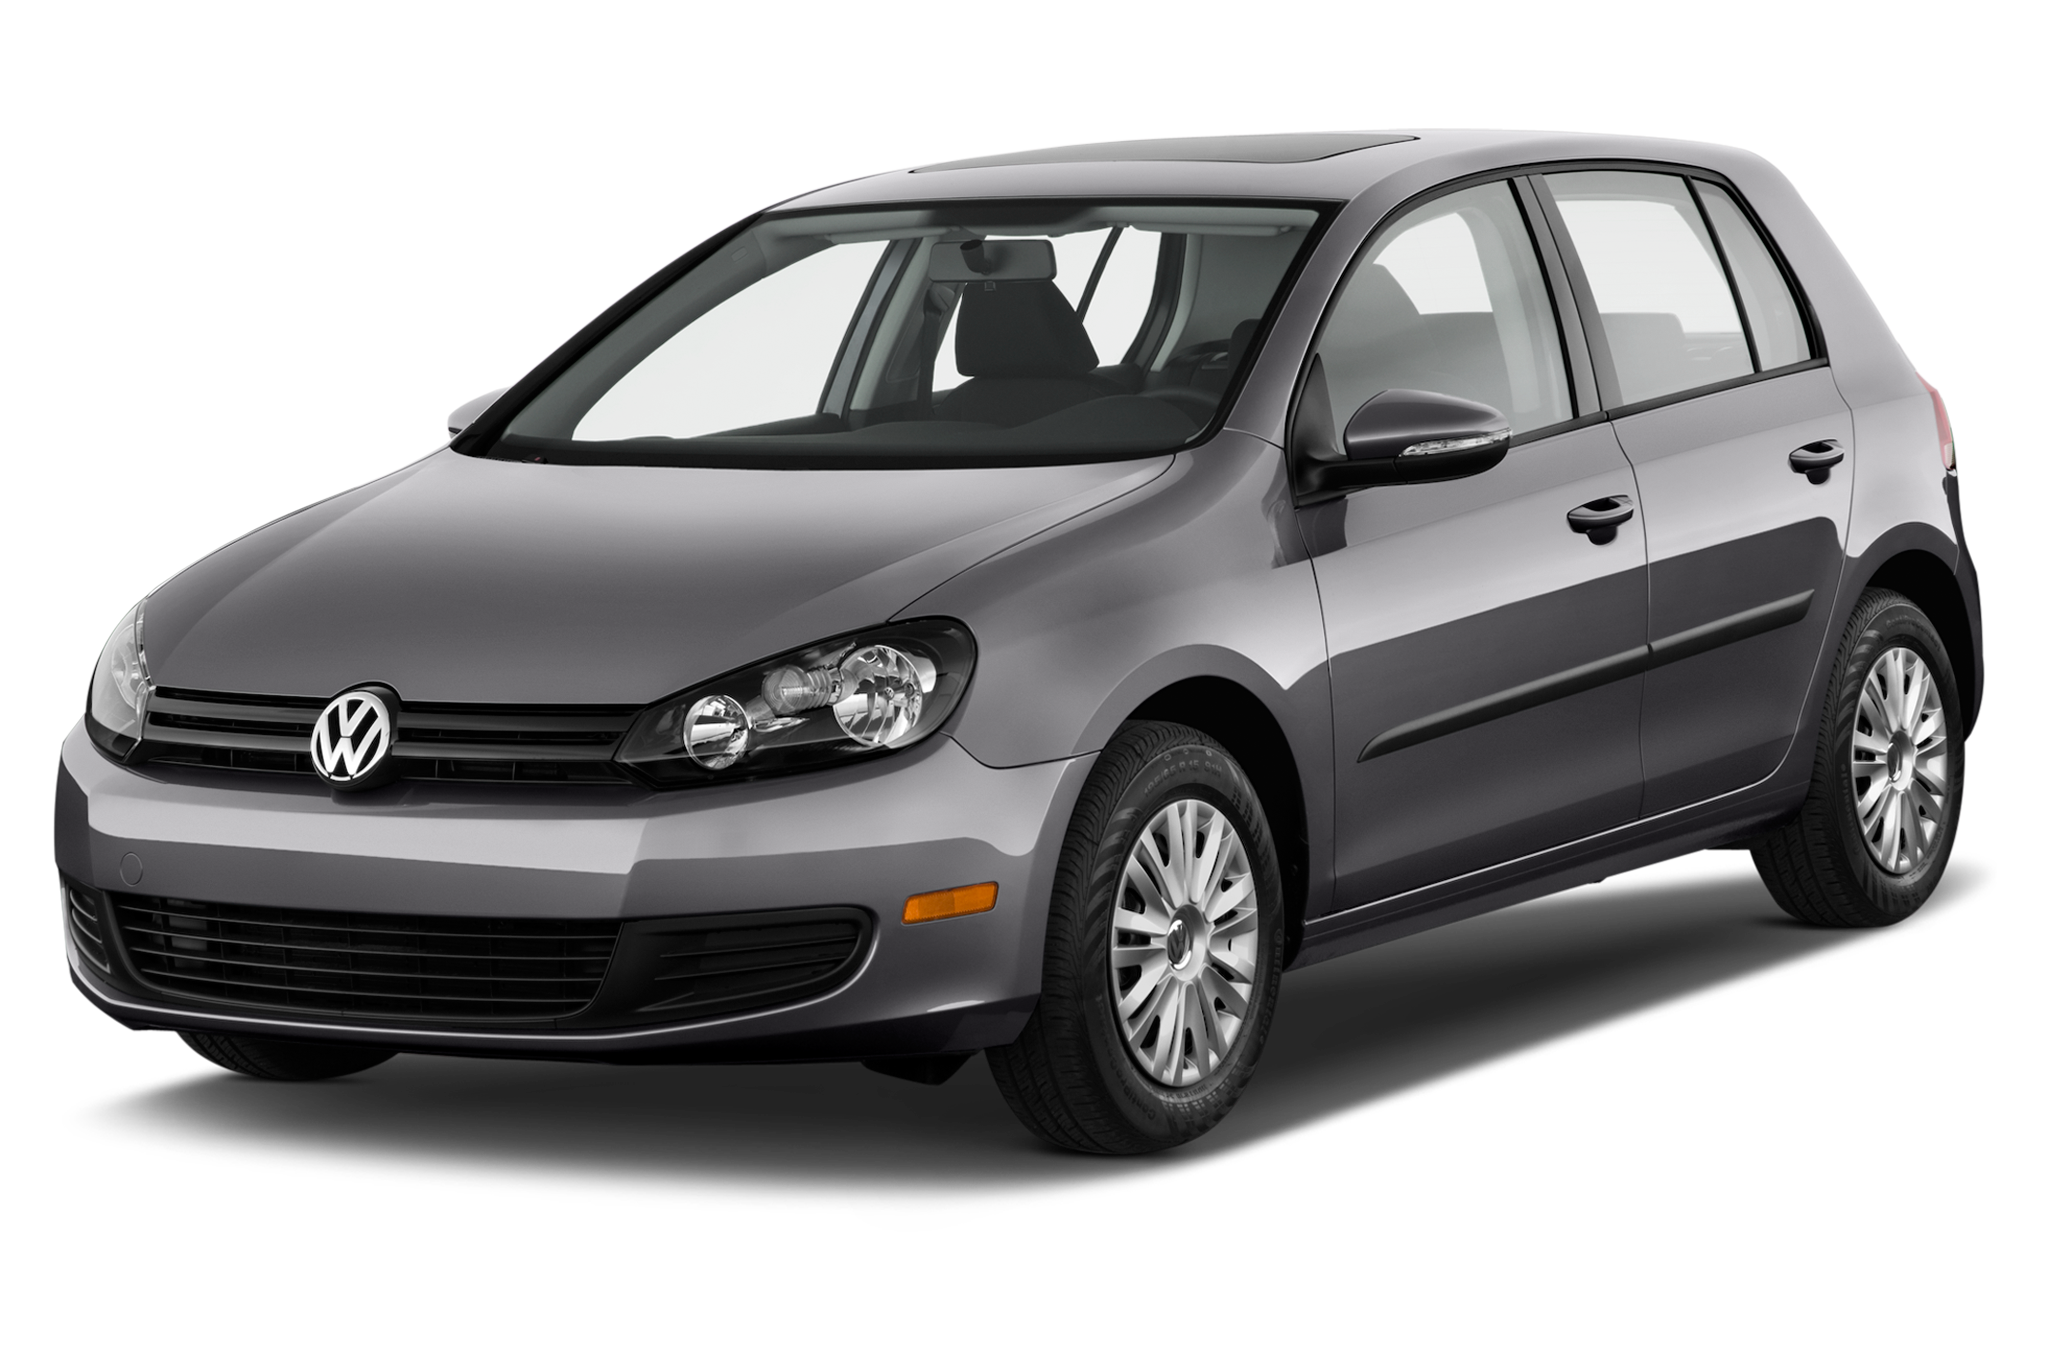 CATEGORY E: VW Golf (automatic)